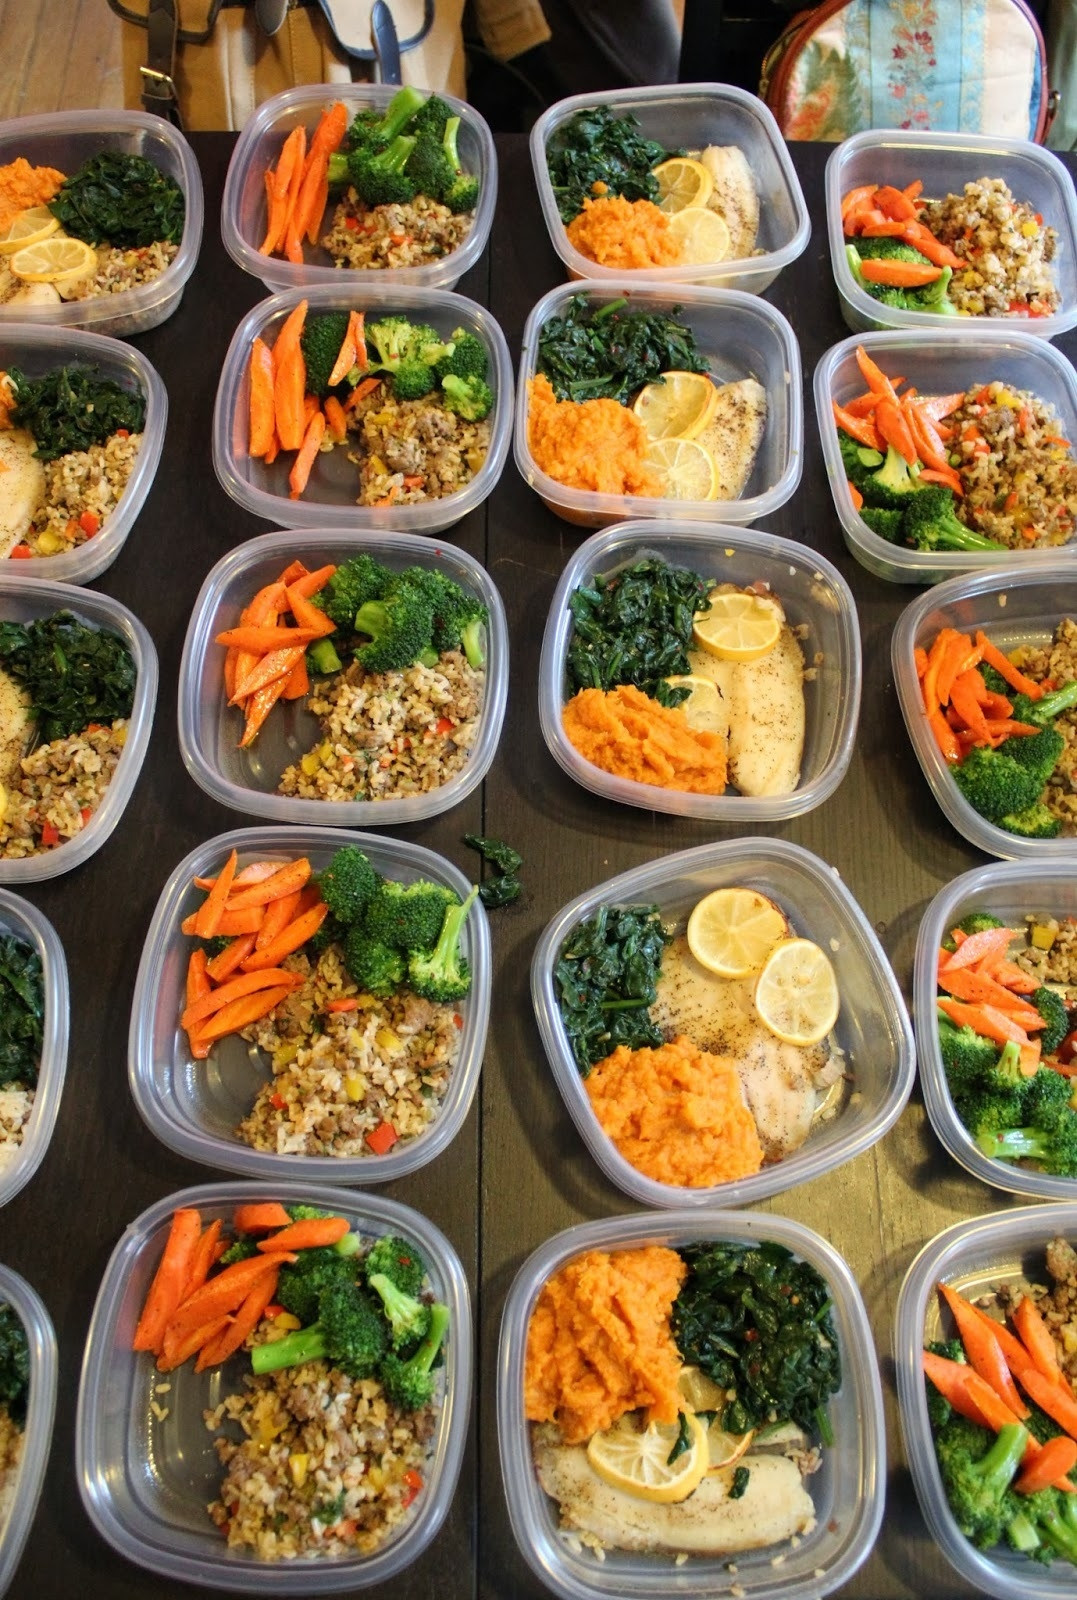 Healthy Dinner Meal Prep  Healthy Meal Prep Ideas For The WeekWritings and Papers